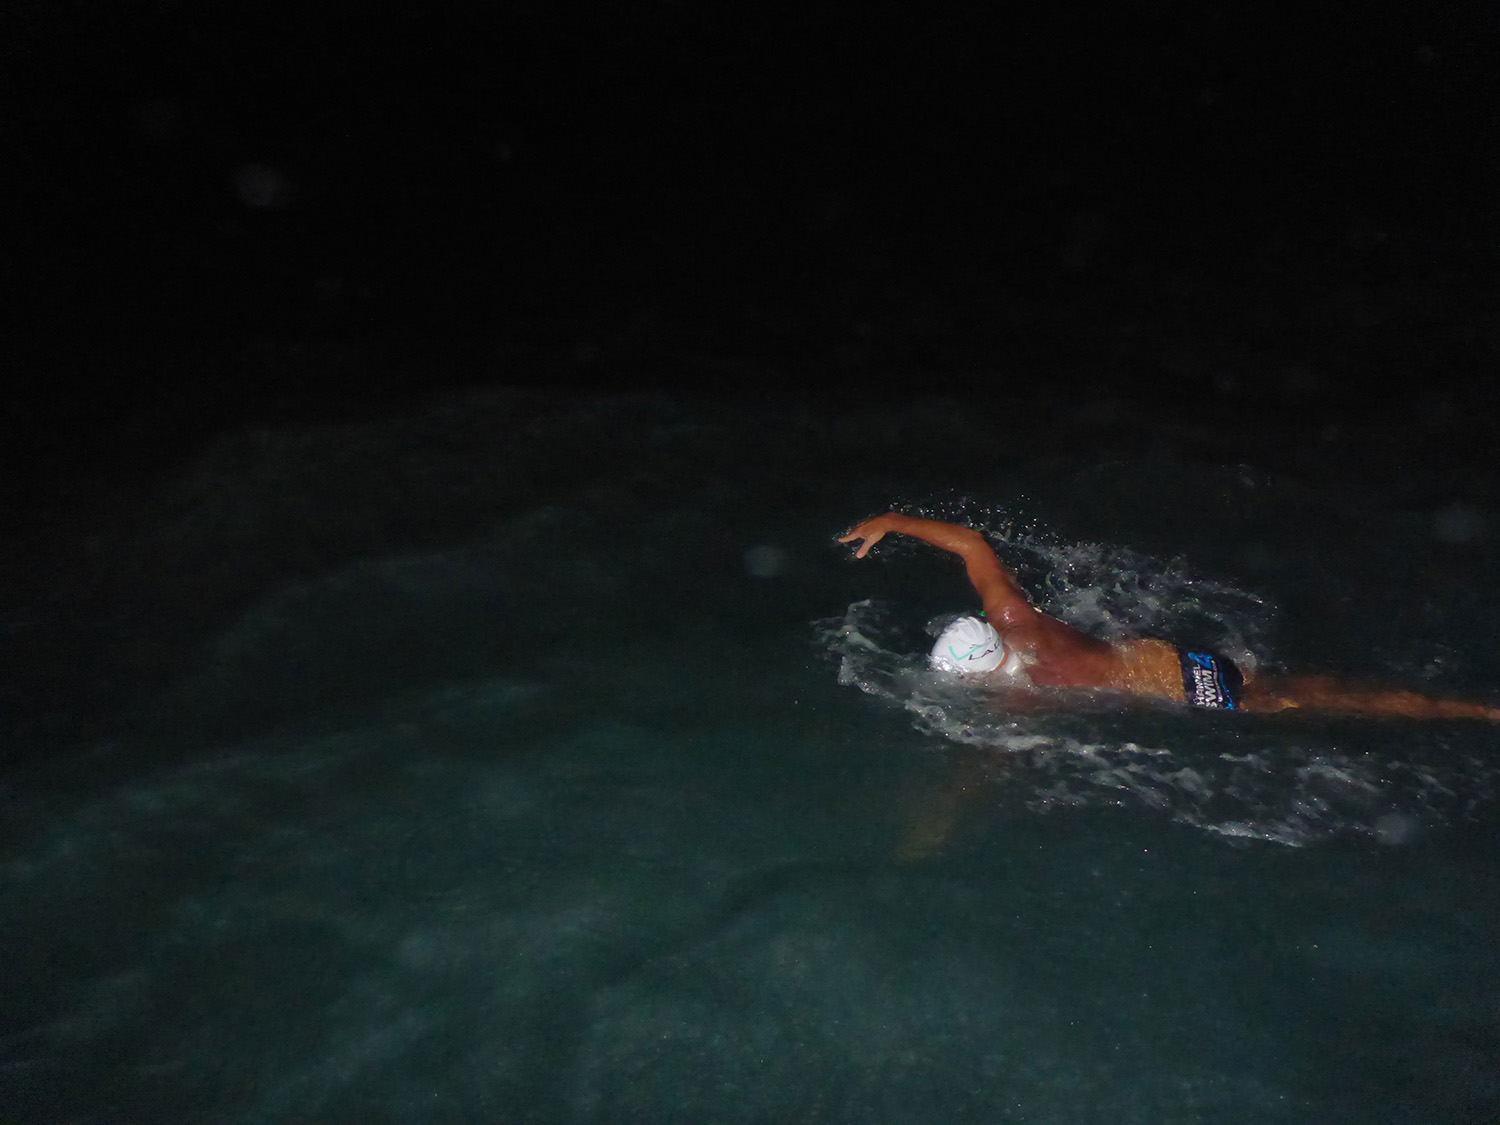 Dean swimming at night